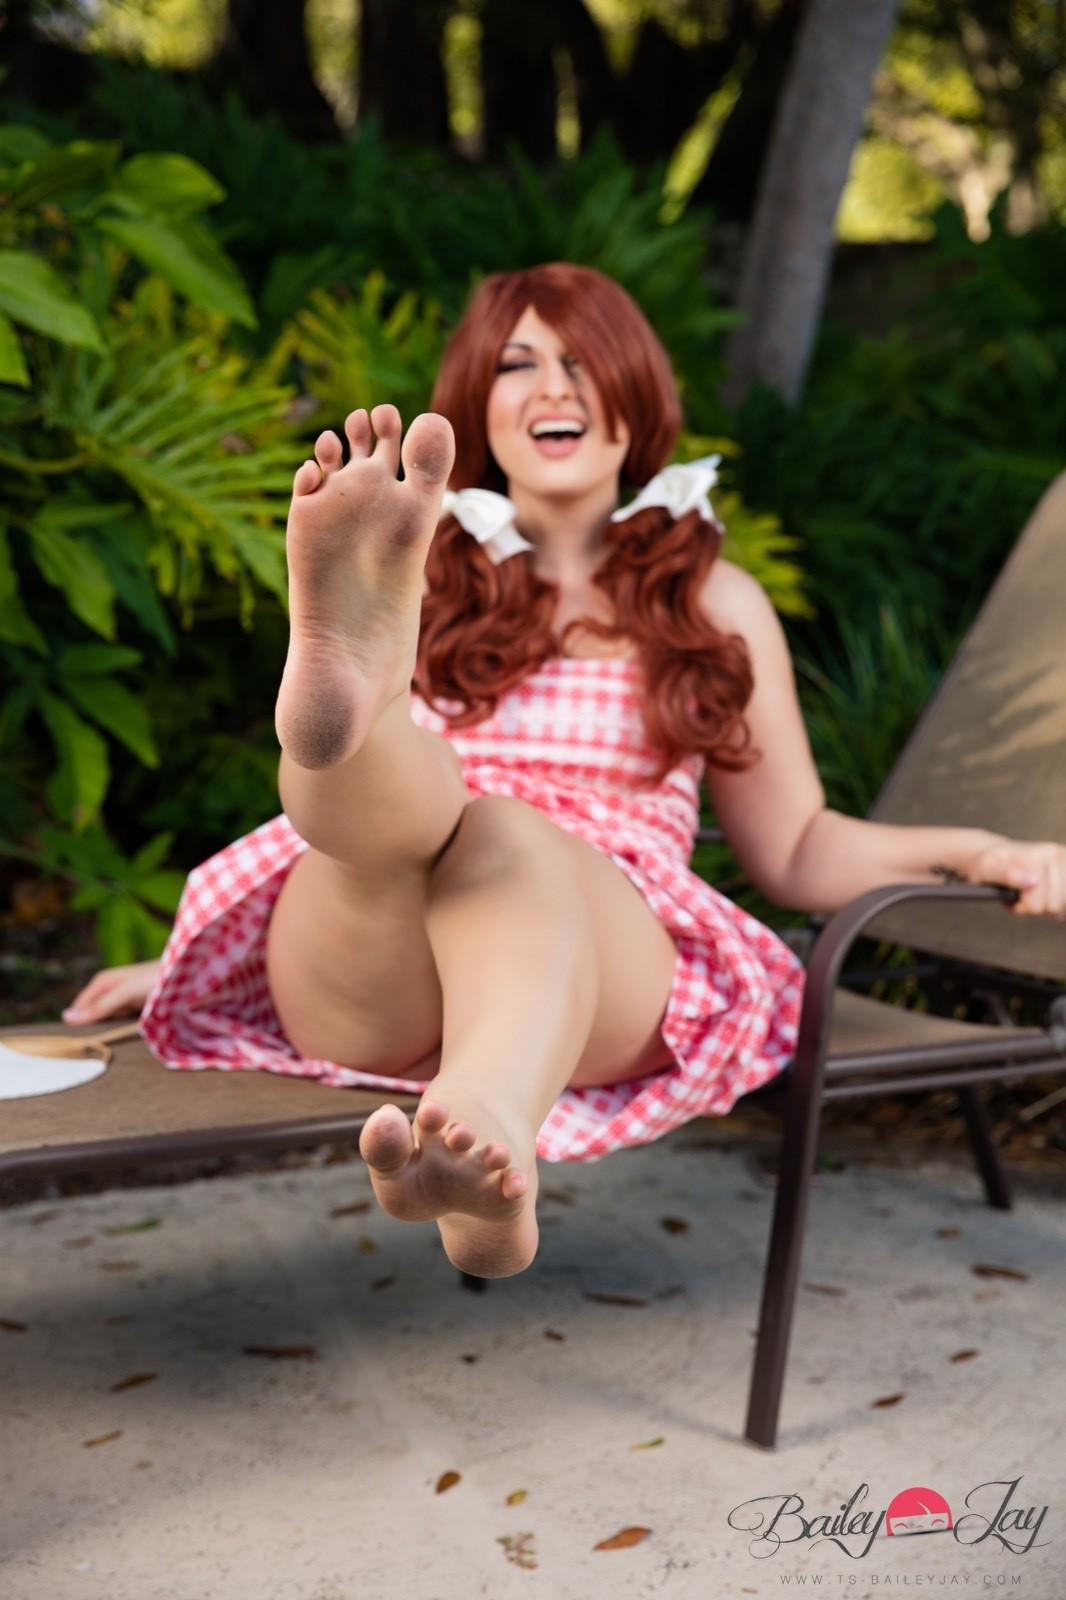 Bailey jay feet